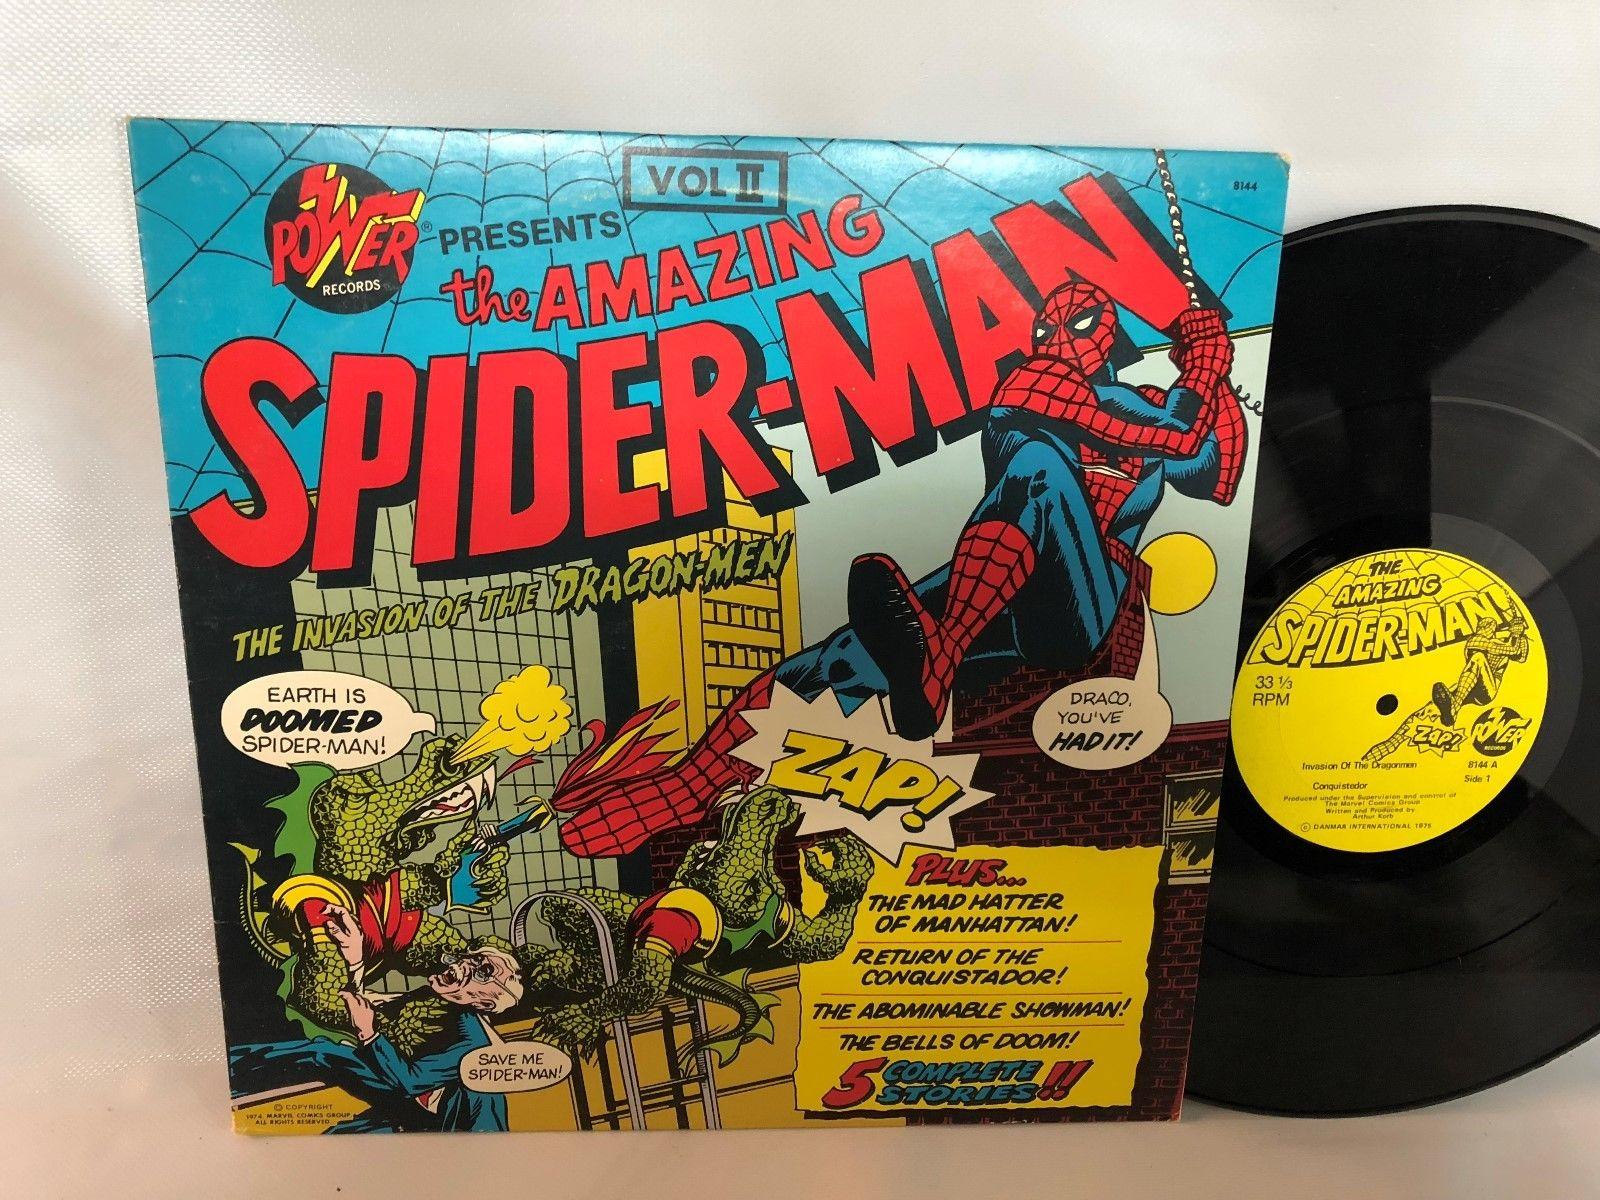 Vintage 1974 The Amazing SpiderMan Record LP Stories VG+ Condition Rare